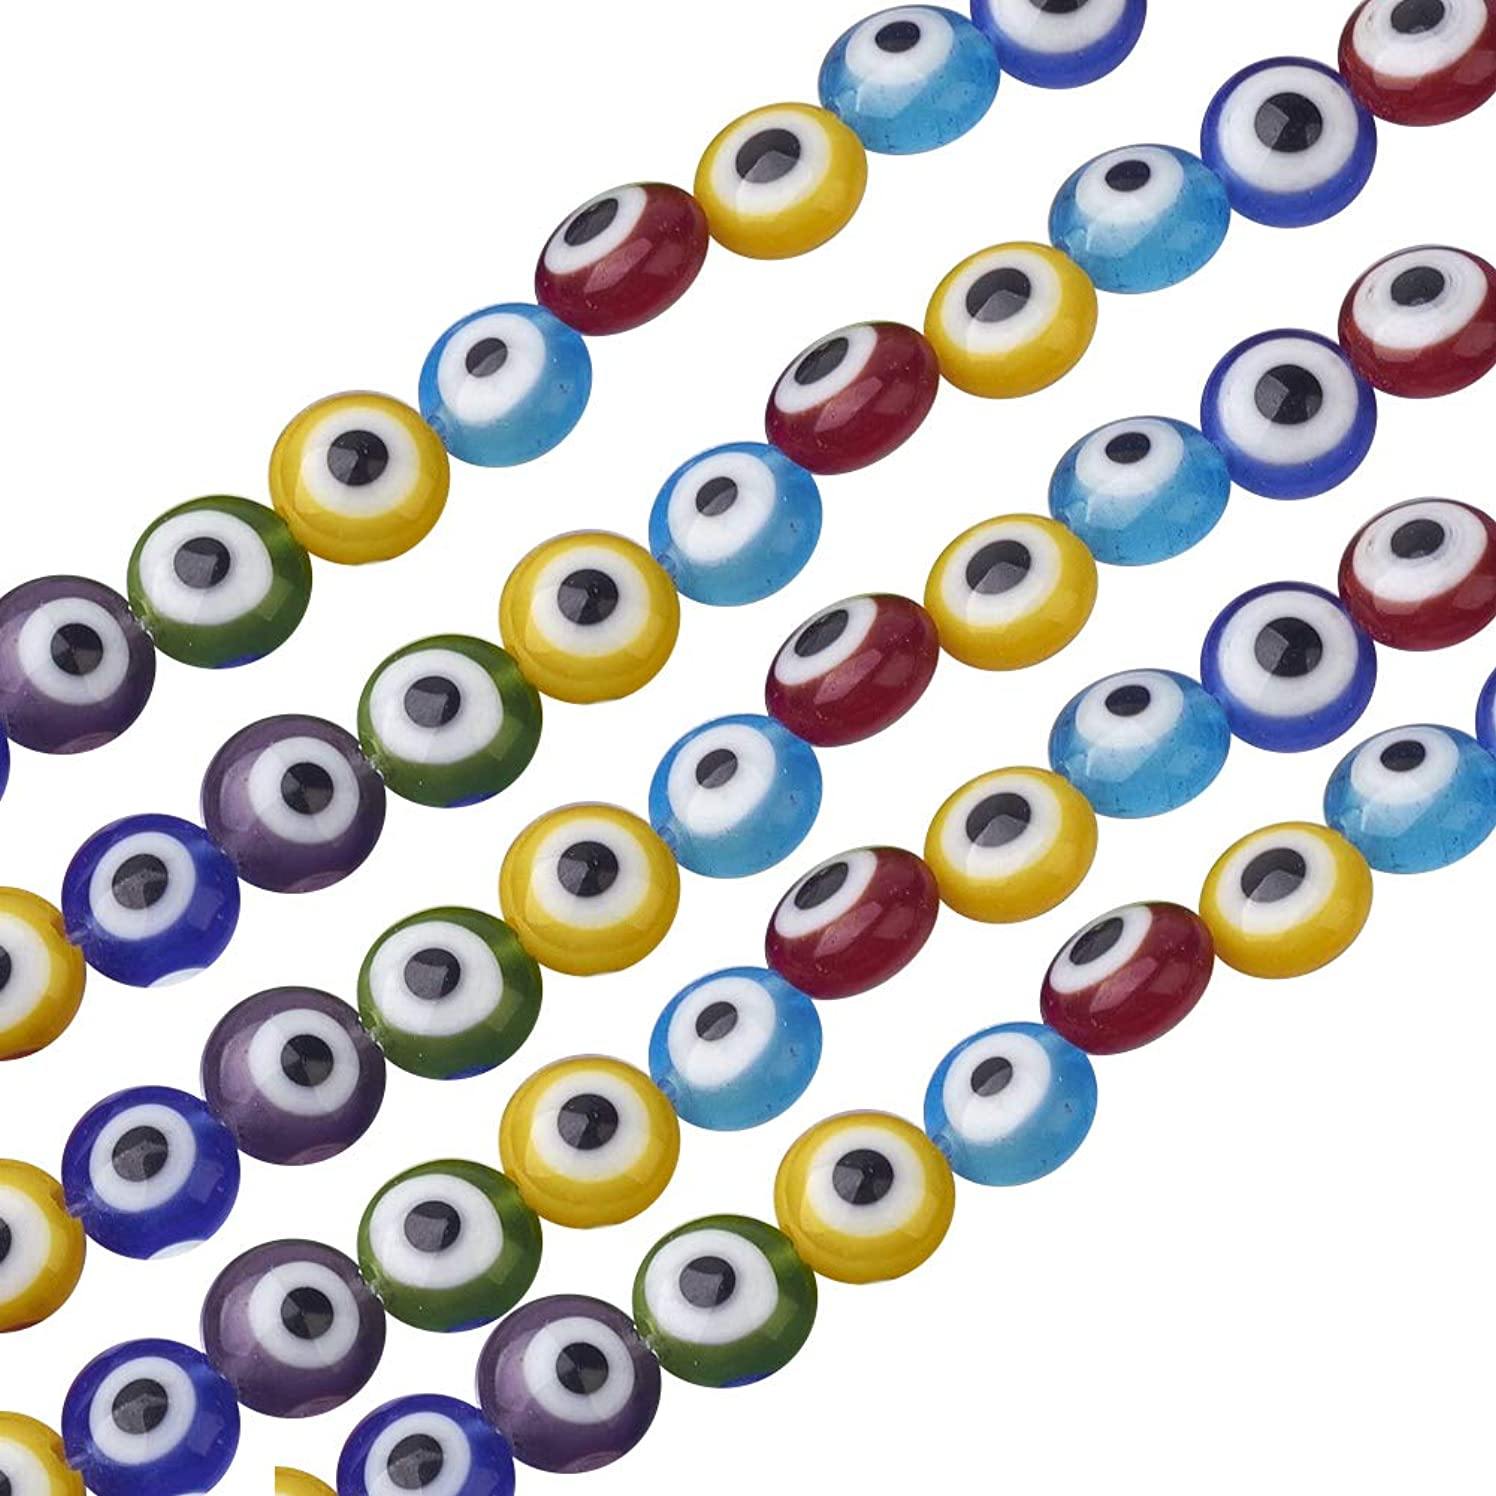 NBEADS 1 Strand (About 51pcs) Mixed Color Flat Round Handmade Evil Eye Lampwork Beads Charms Spacer Beads fit Bracelets Necklace Jewelry Making